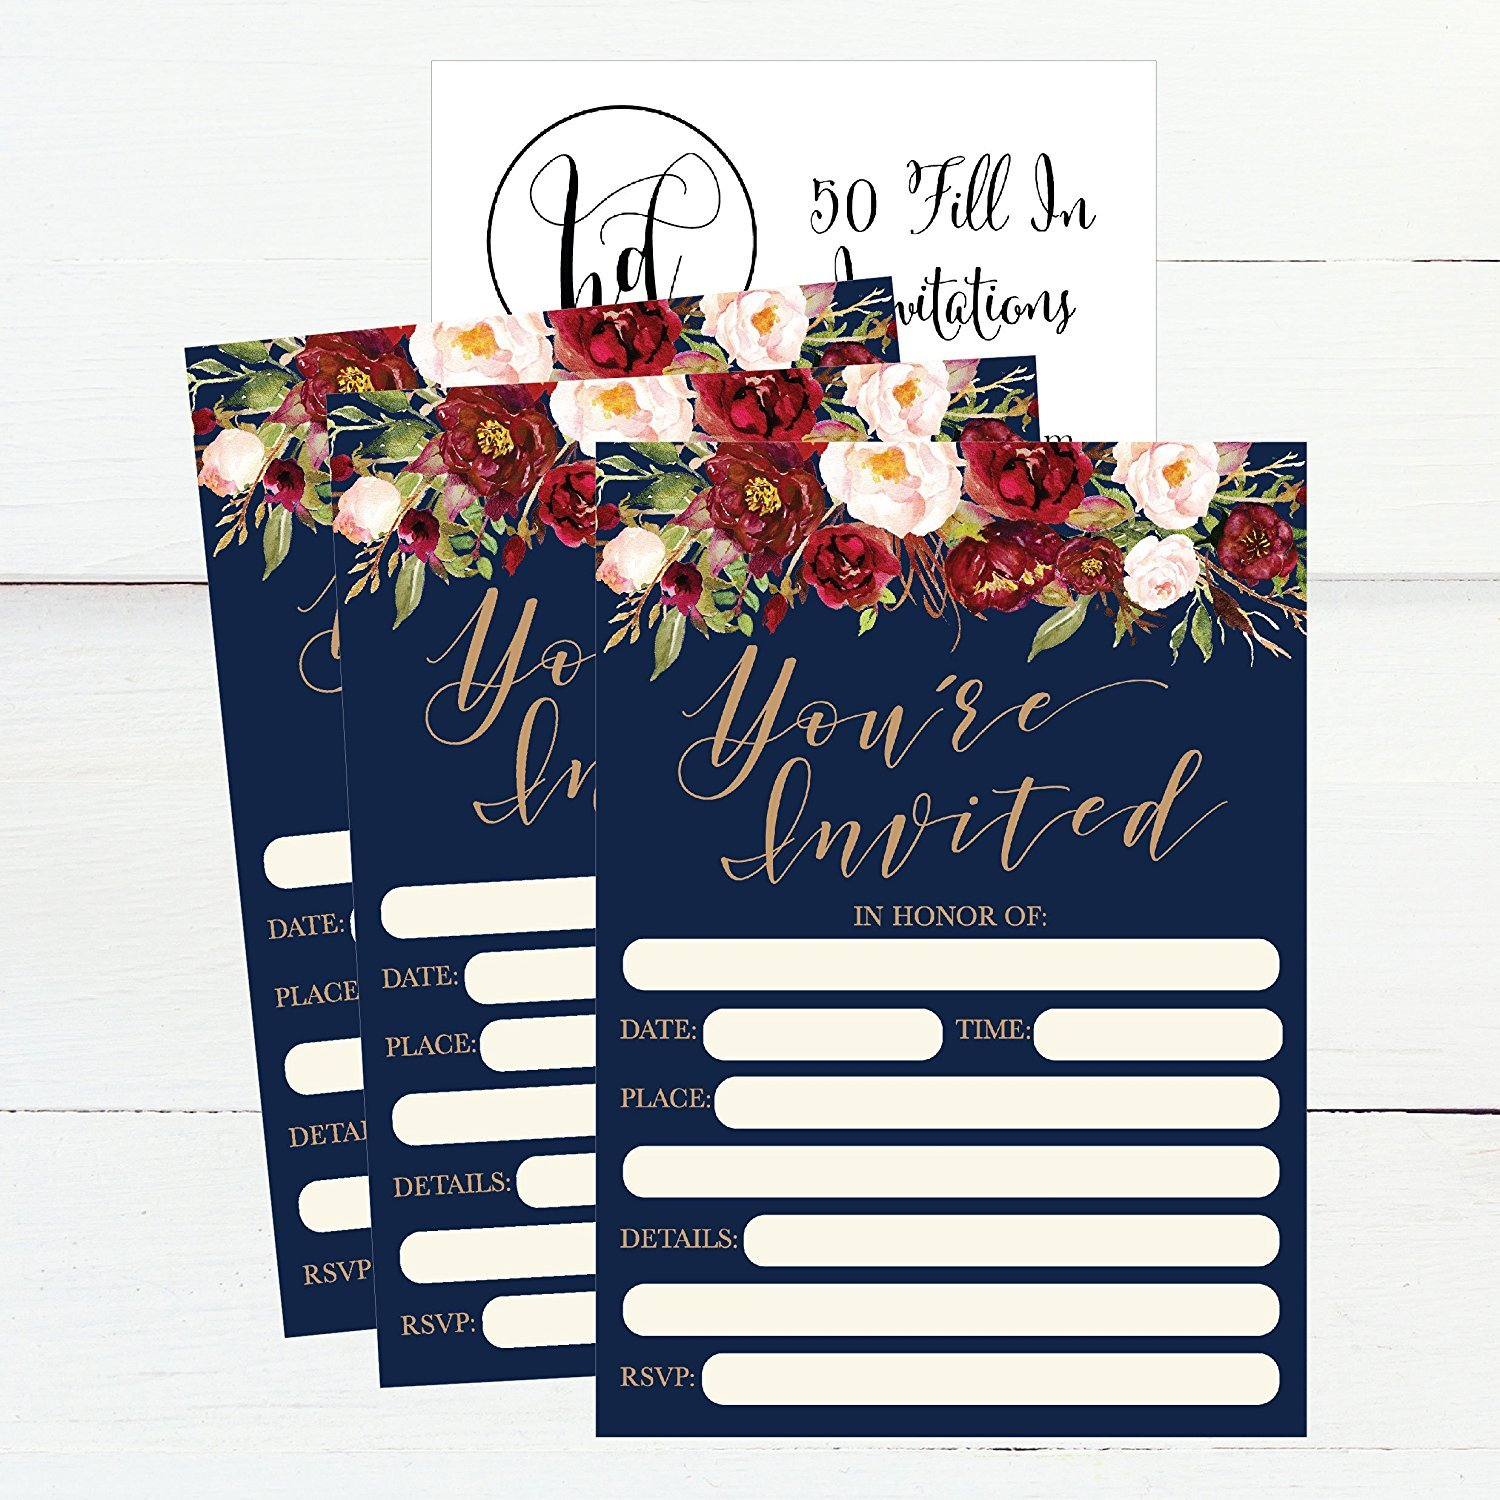 50 Floral Invitations Fall Bridal Or Baby Shower Invite Birthday